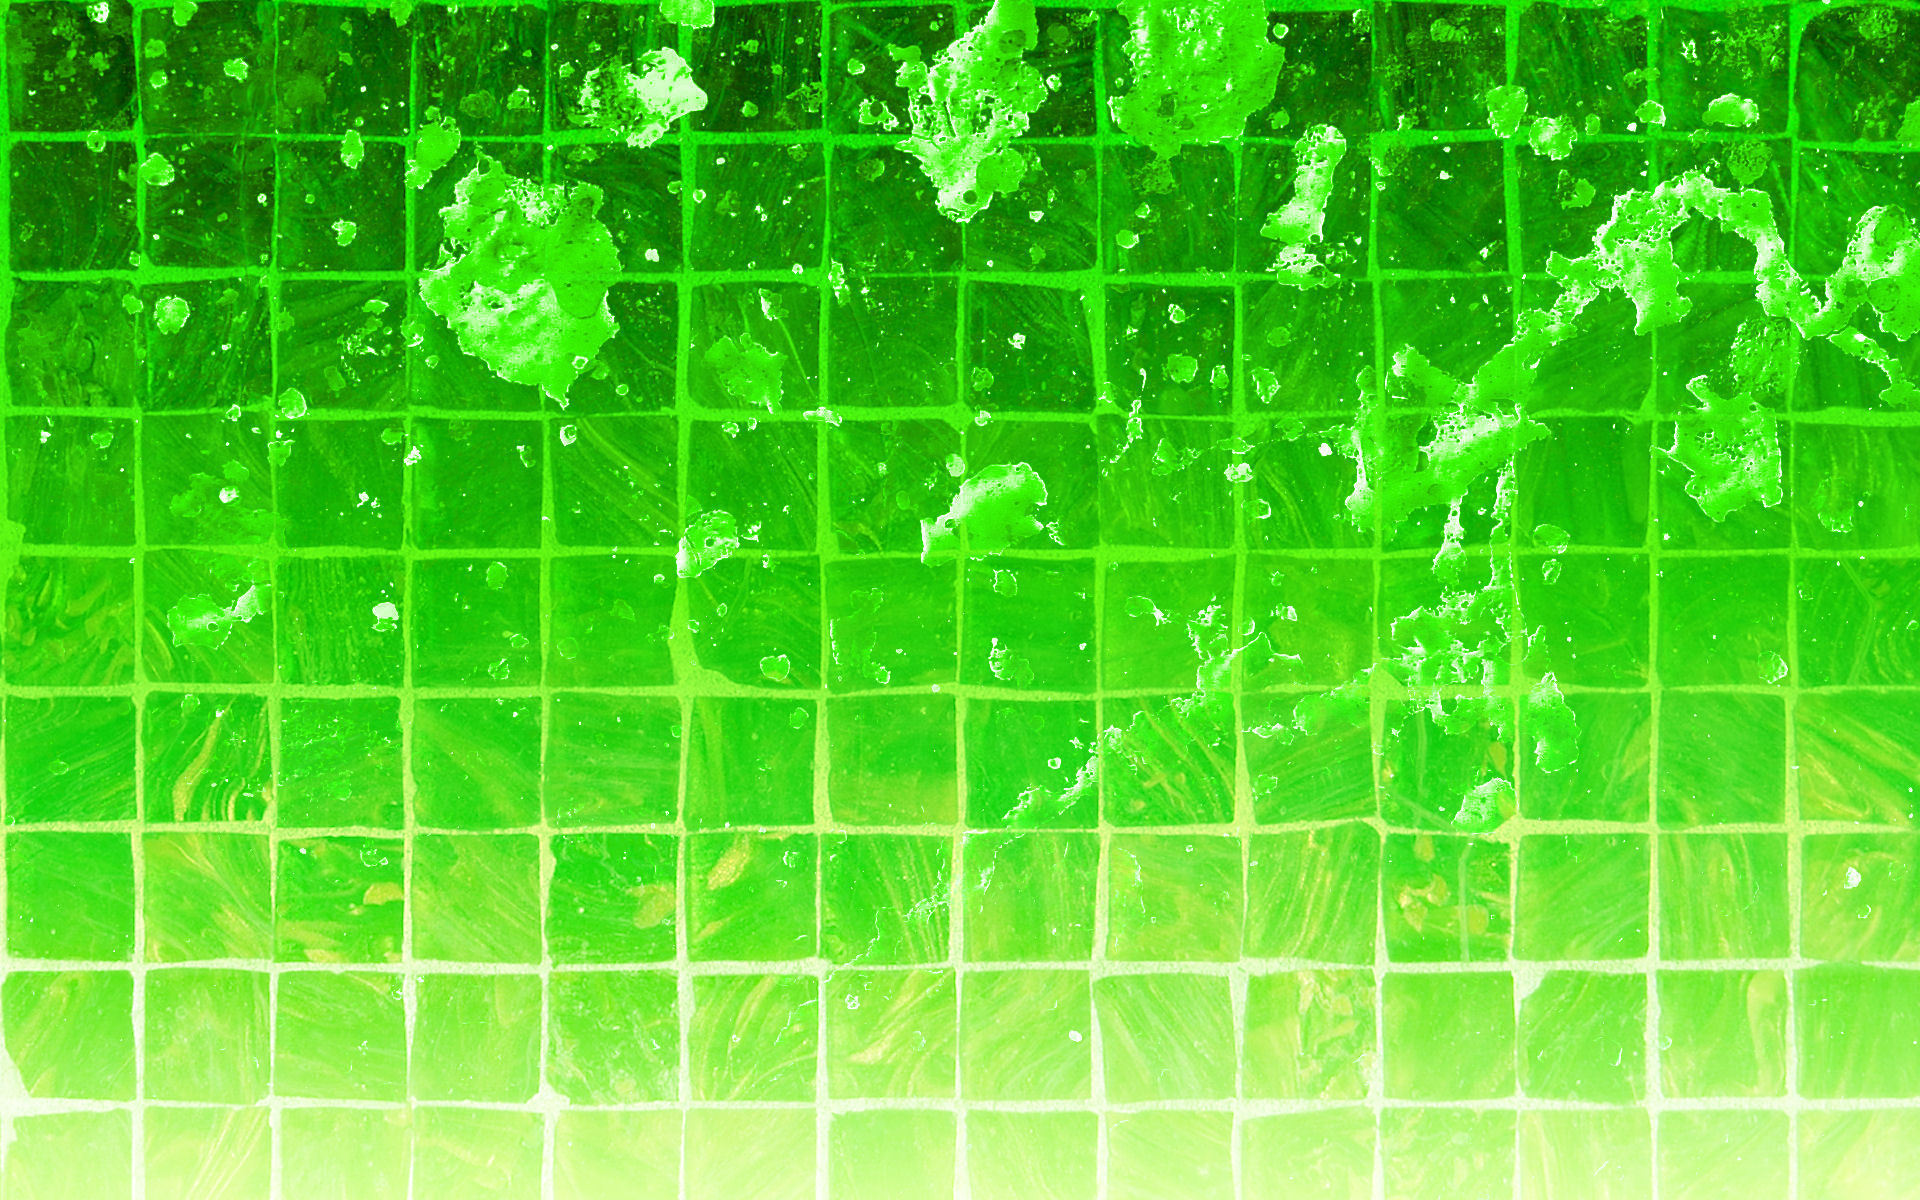 Hd wallpaper green -  Green Wallpaper 4